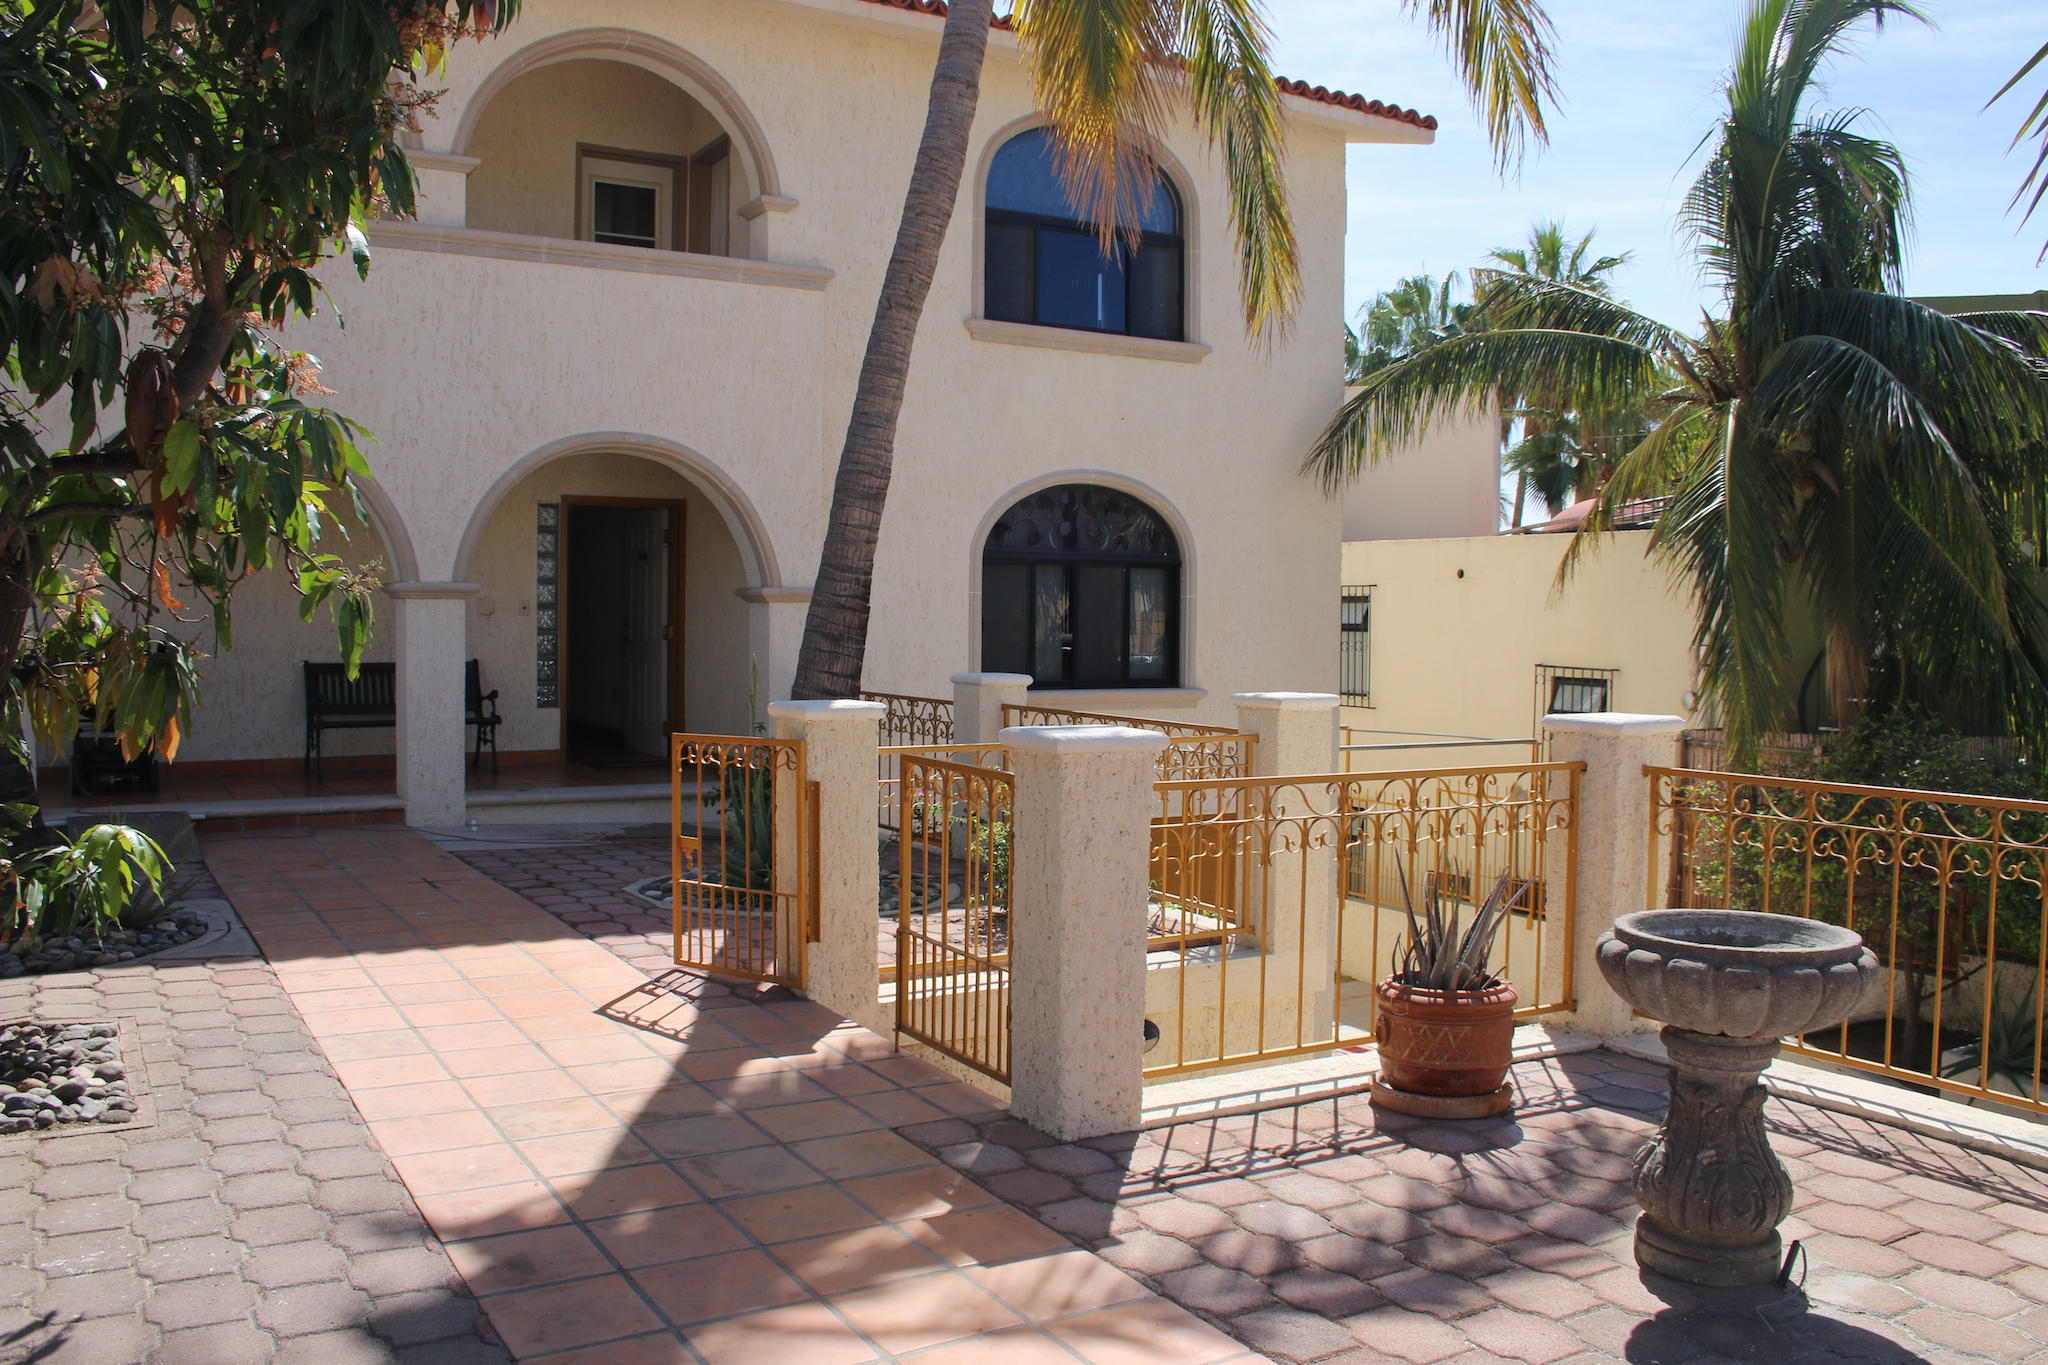 San Jose del Cabo, 5 Bedrooms Bedrooms, ,3 BathroomsBathrooms,House,For Sale,Paseo Finisterra,15-354